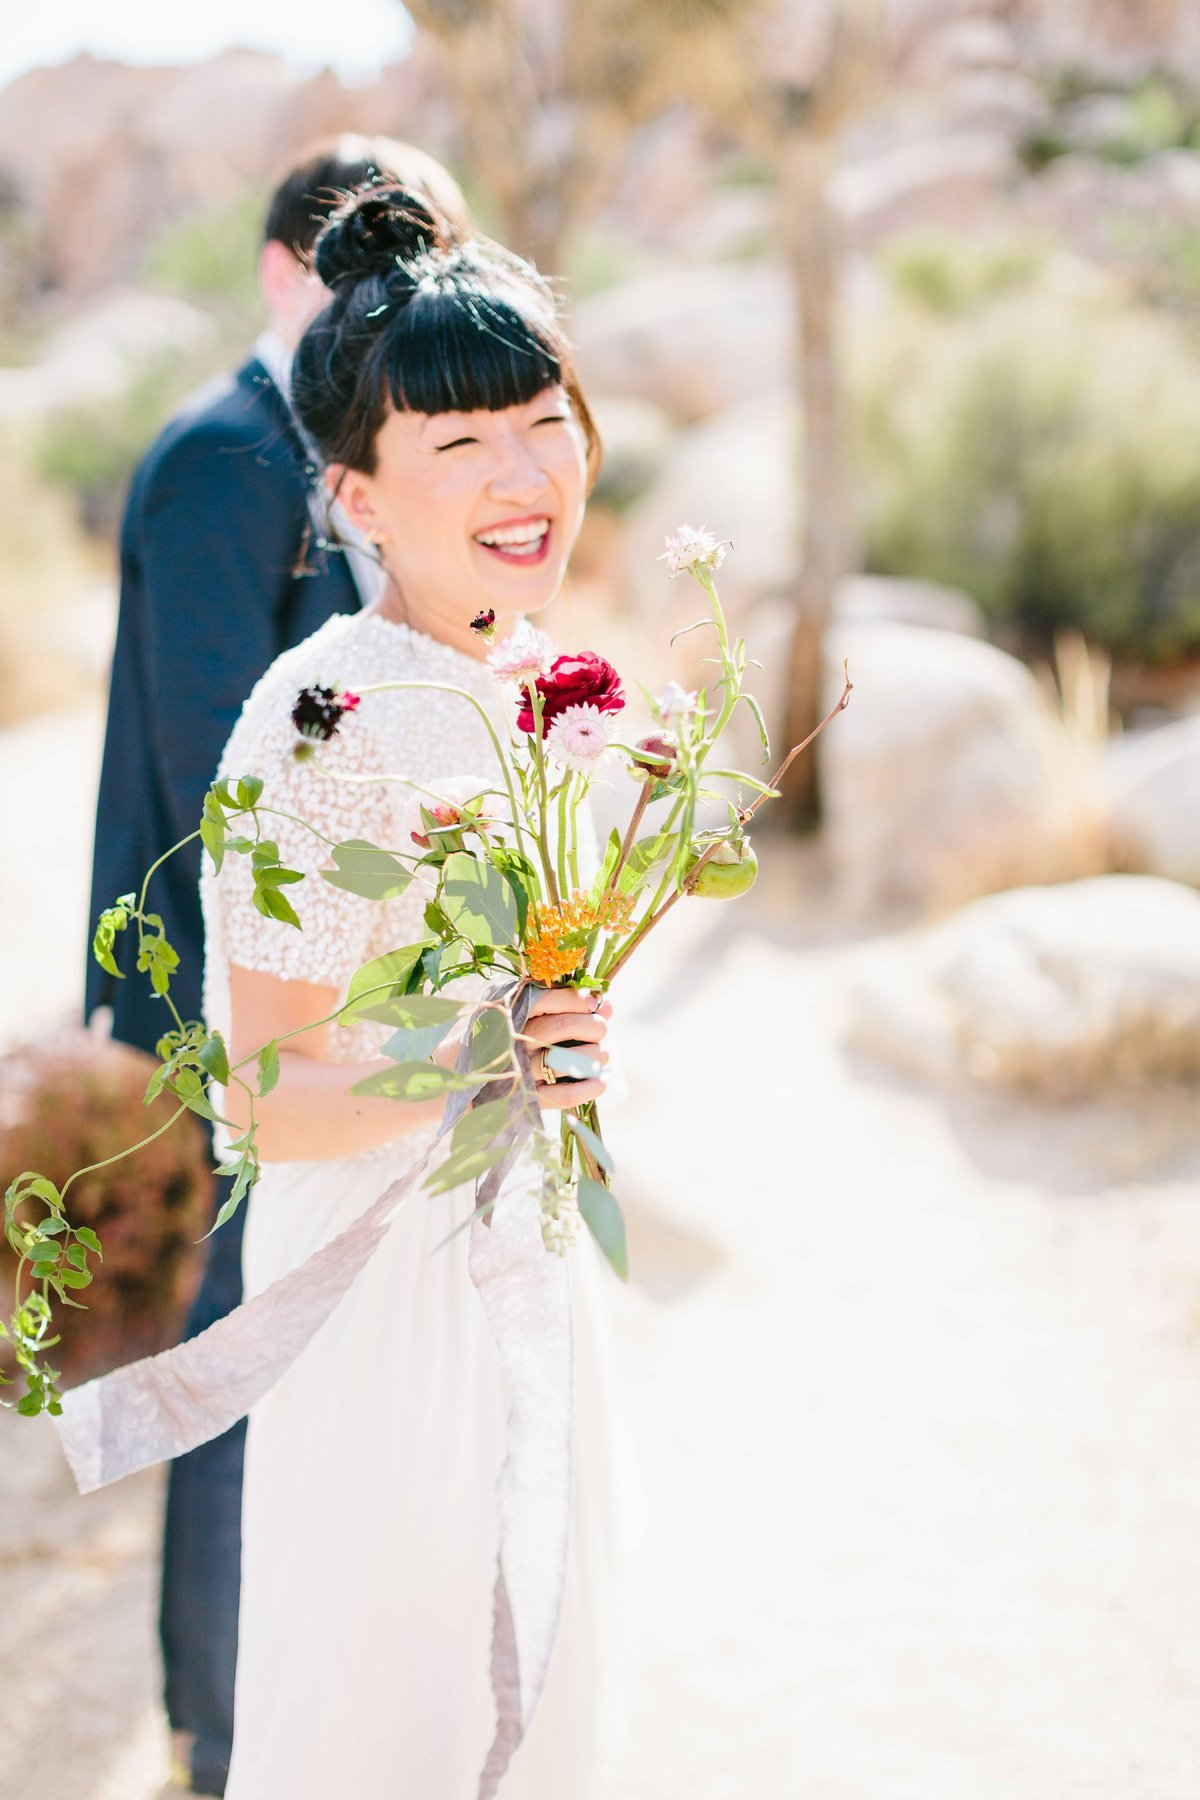 Best California Wedding Photographer-Jodee Debes Photography-43